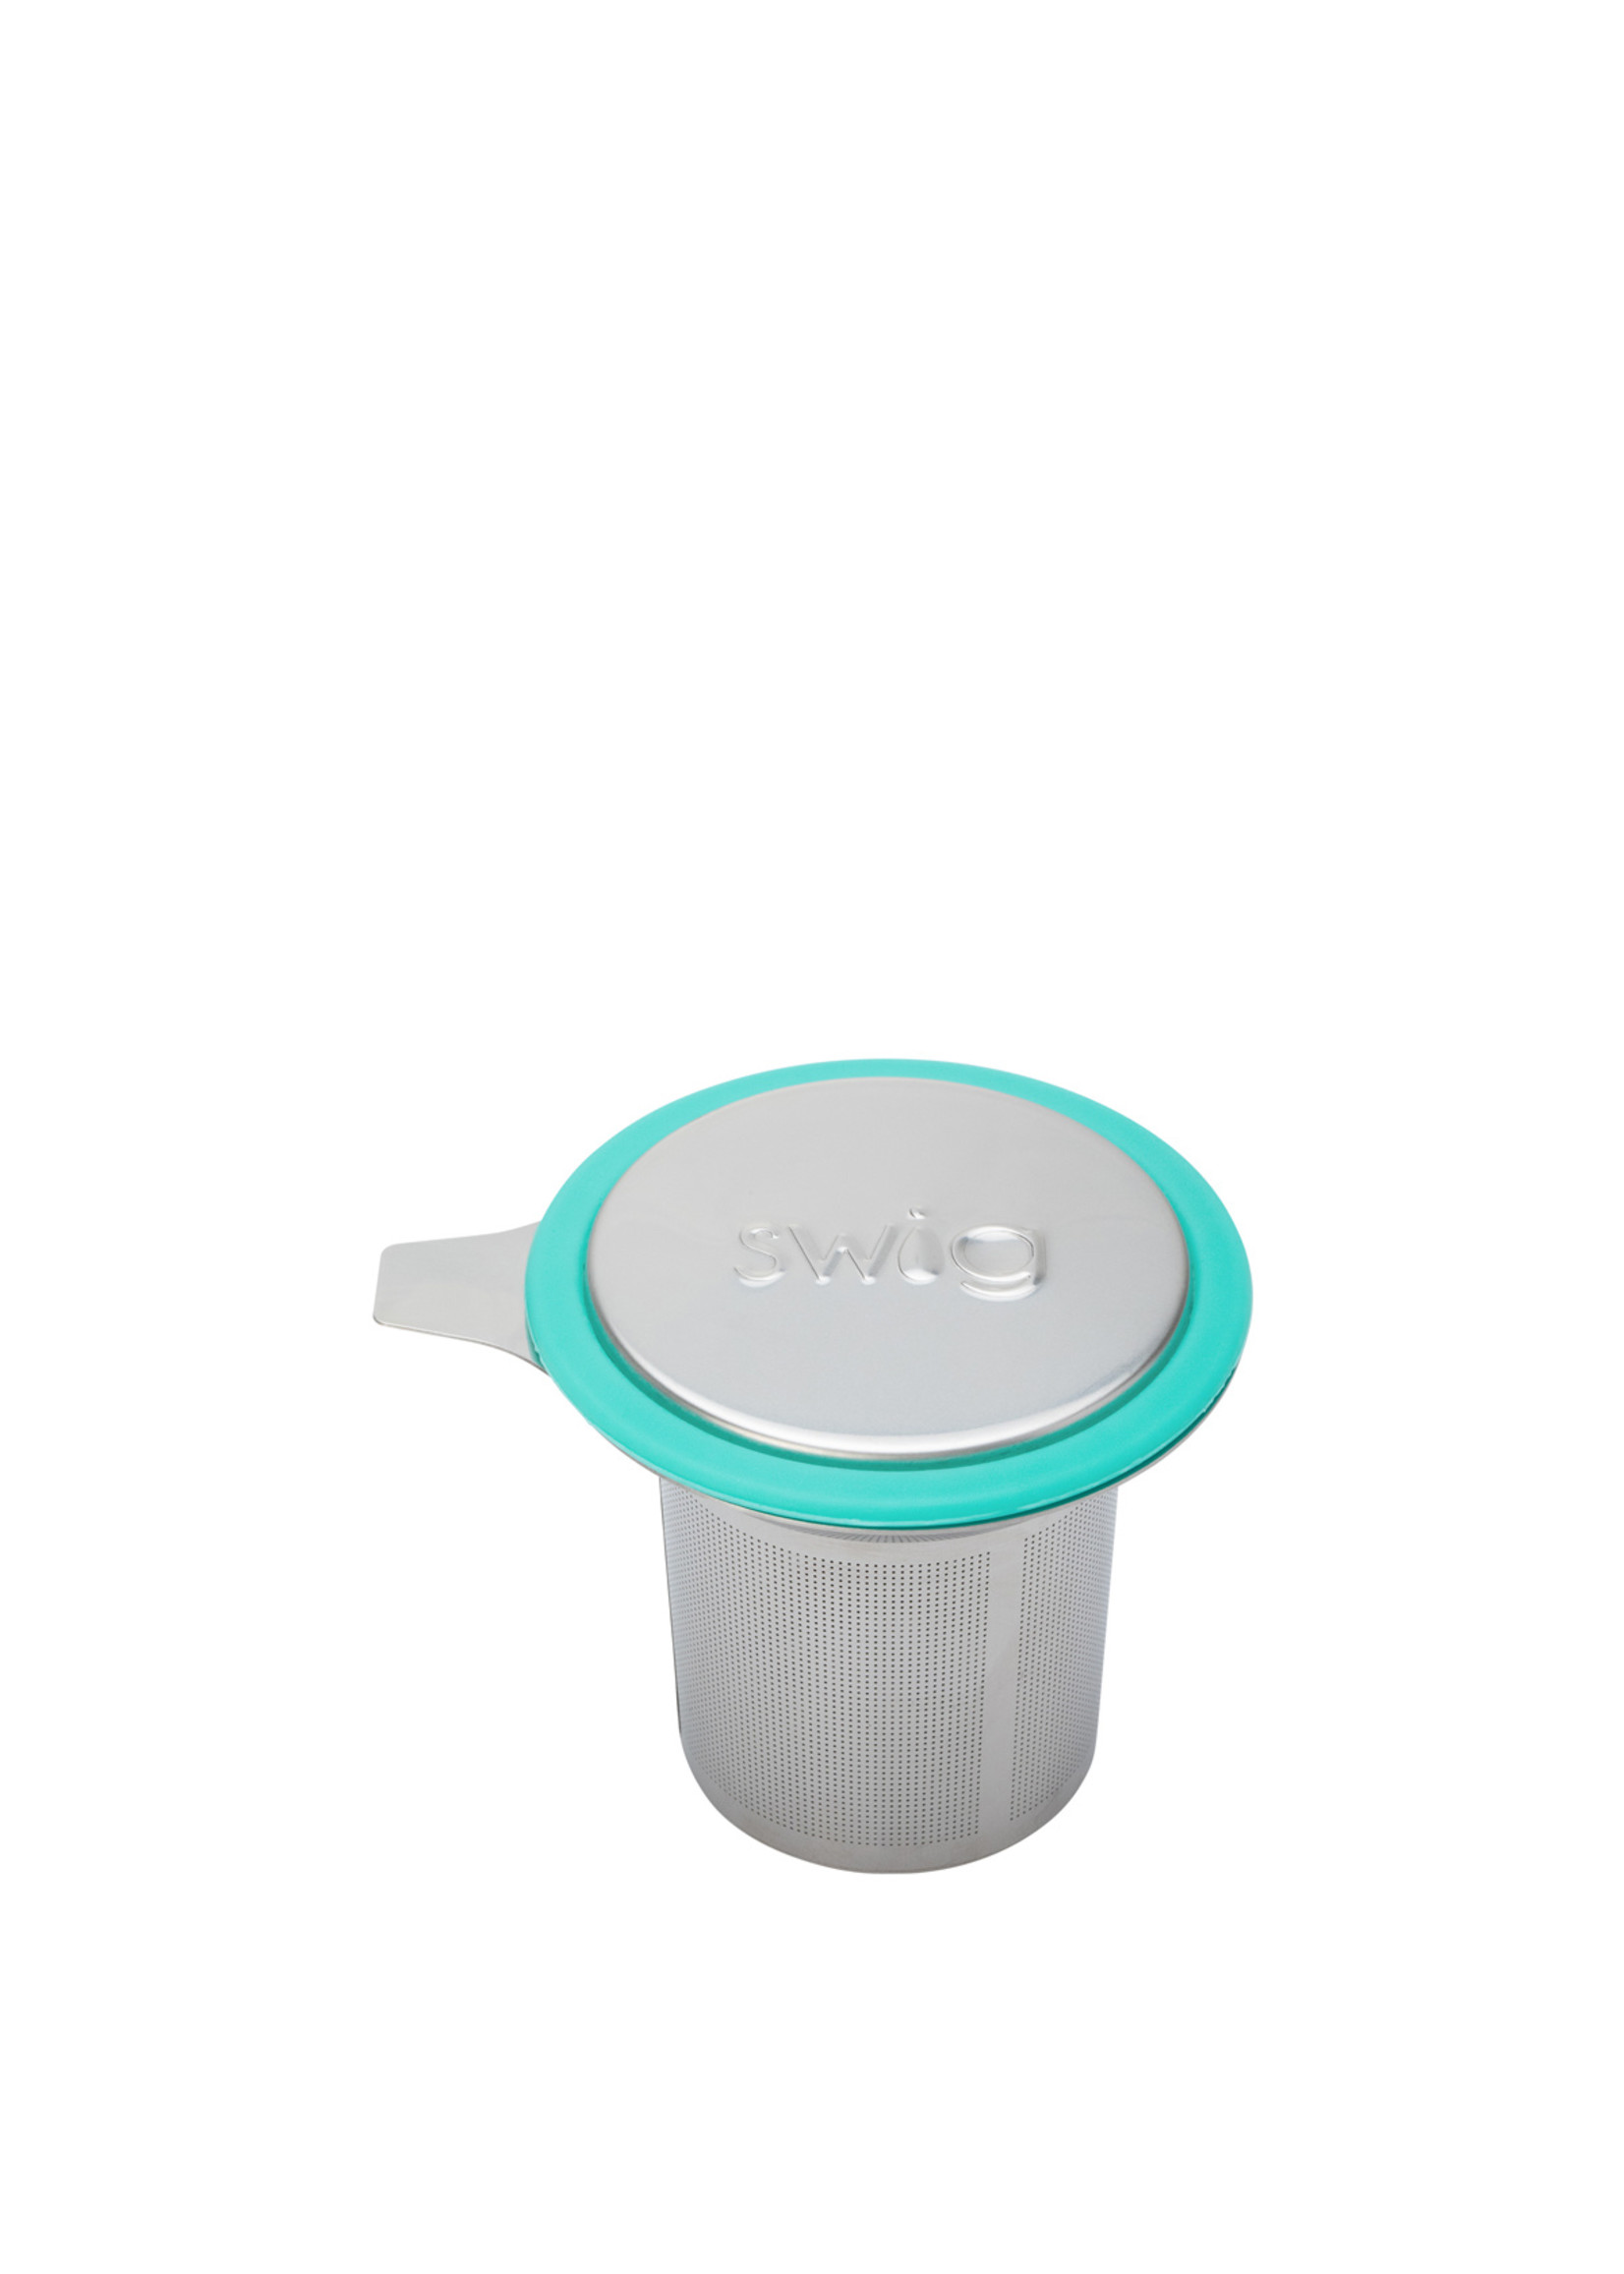 Swig Life Stainless Steel Tea Infuser with Silicone Cover